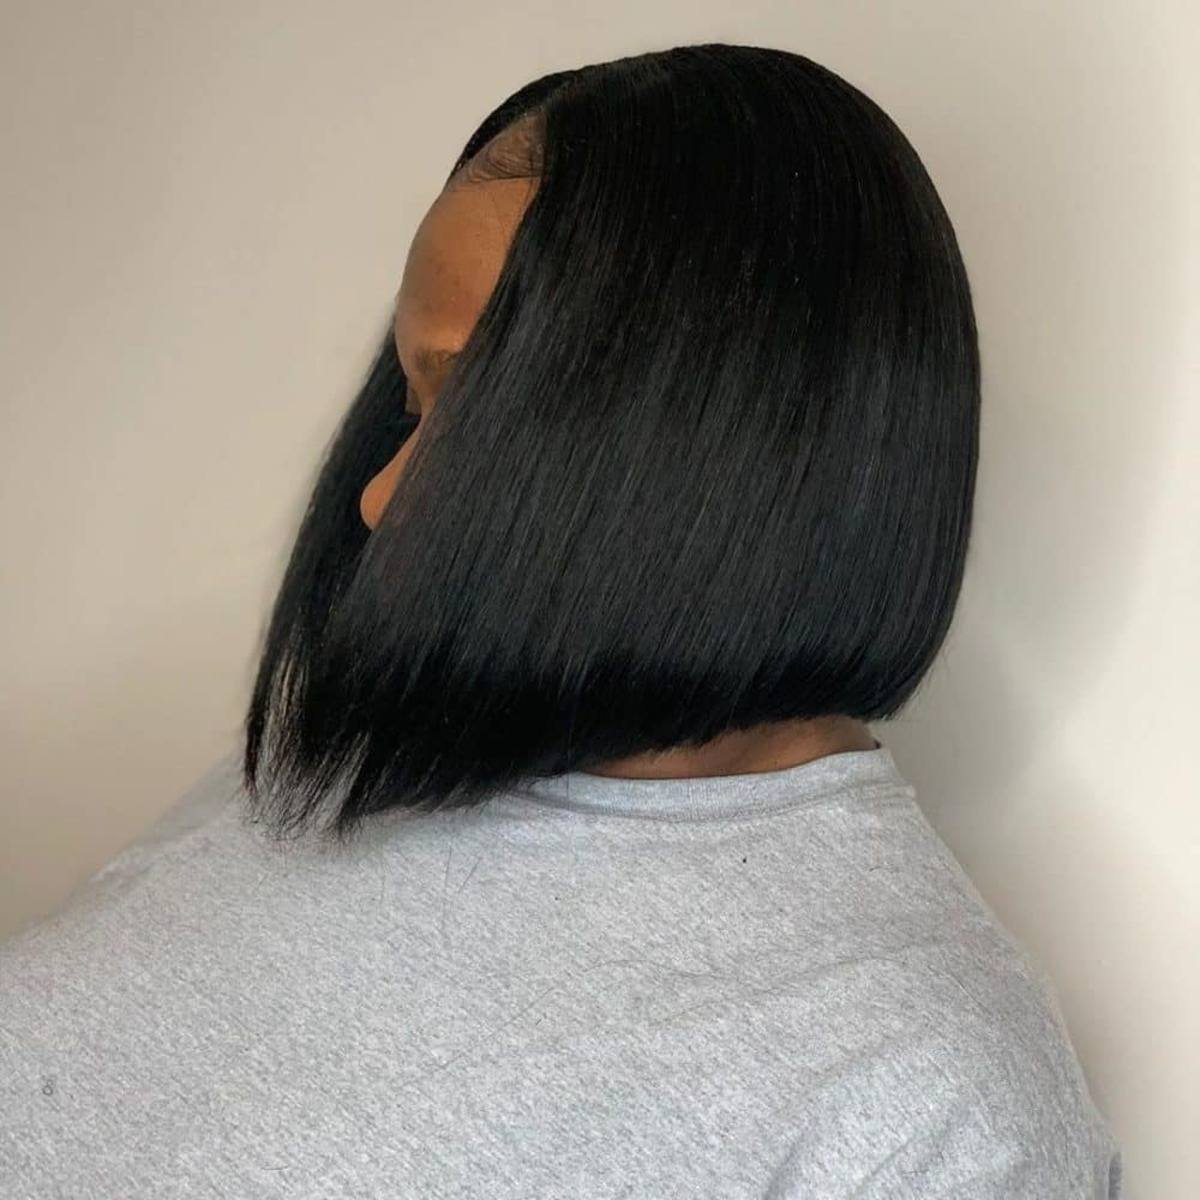 19 Sleekest Sew-In Bob Hairstyles for Naturally Black Hair